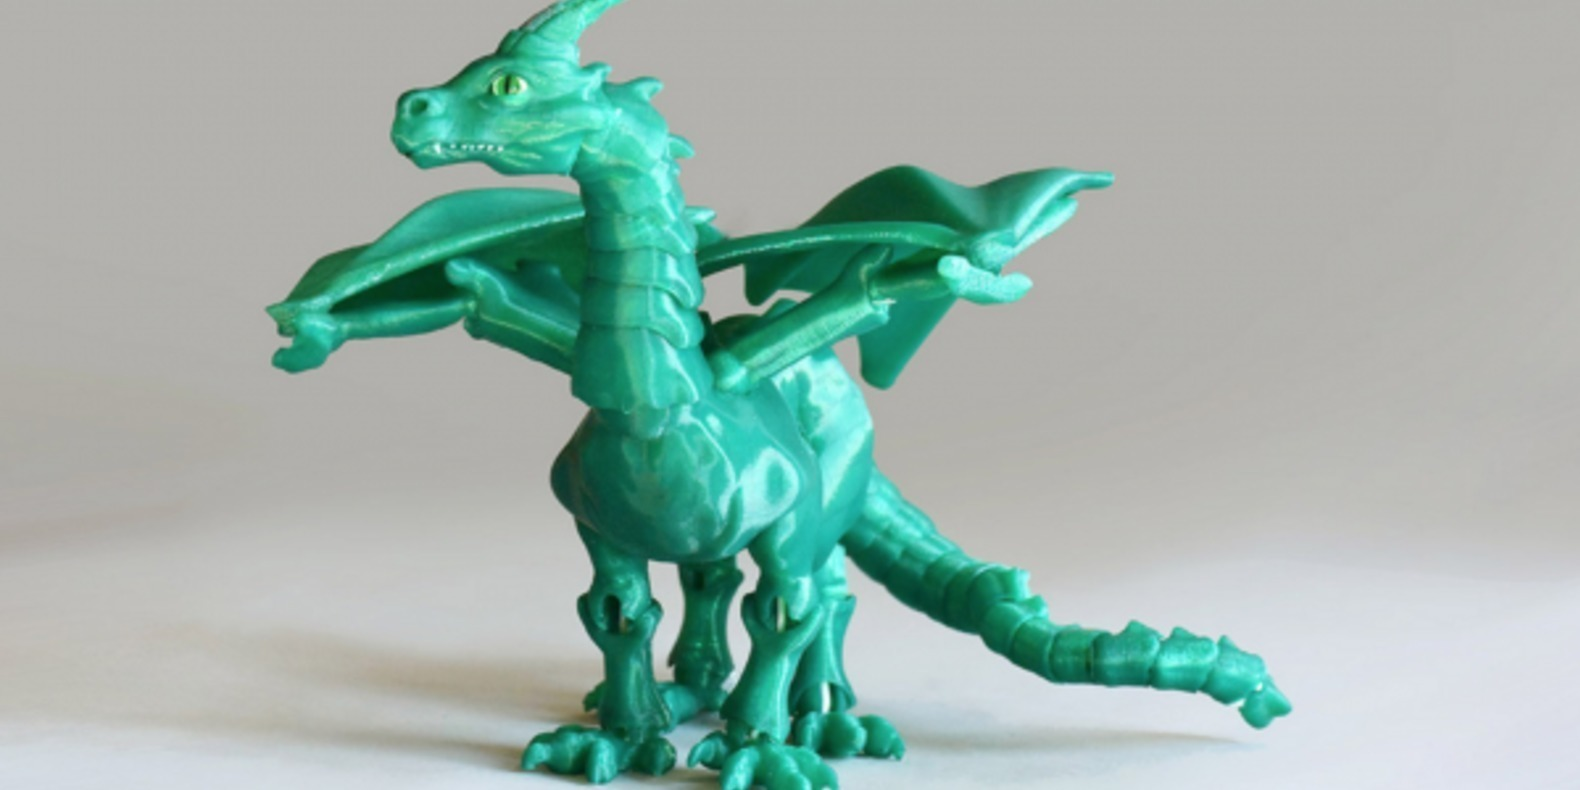 http://fichier3d.fr/wp-content/uploads/2016/02/Braq-dragon-jointed-3D-printed-impression-3D-fichier-STL-sonia-verdu-BQ-BQlabs-3.png